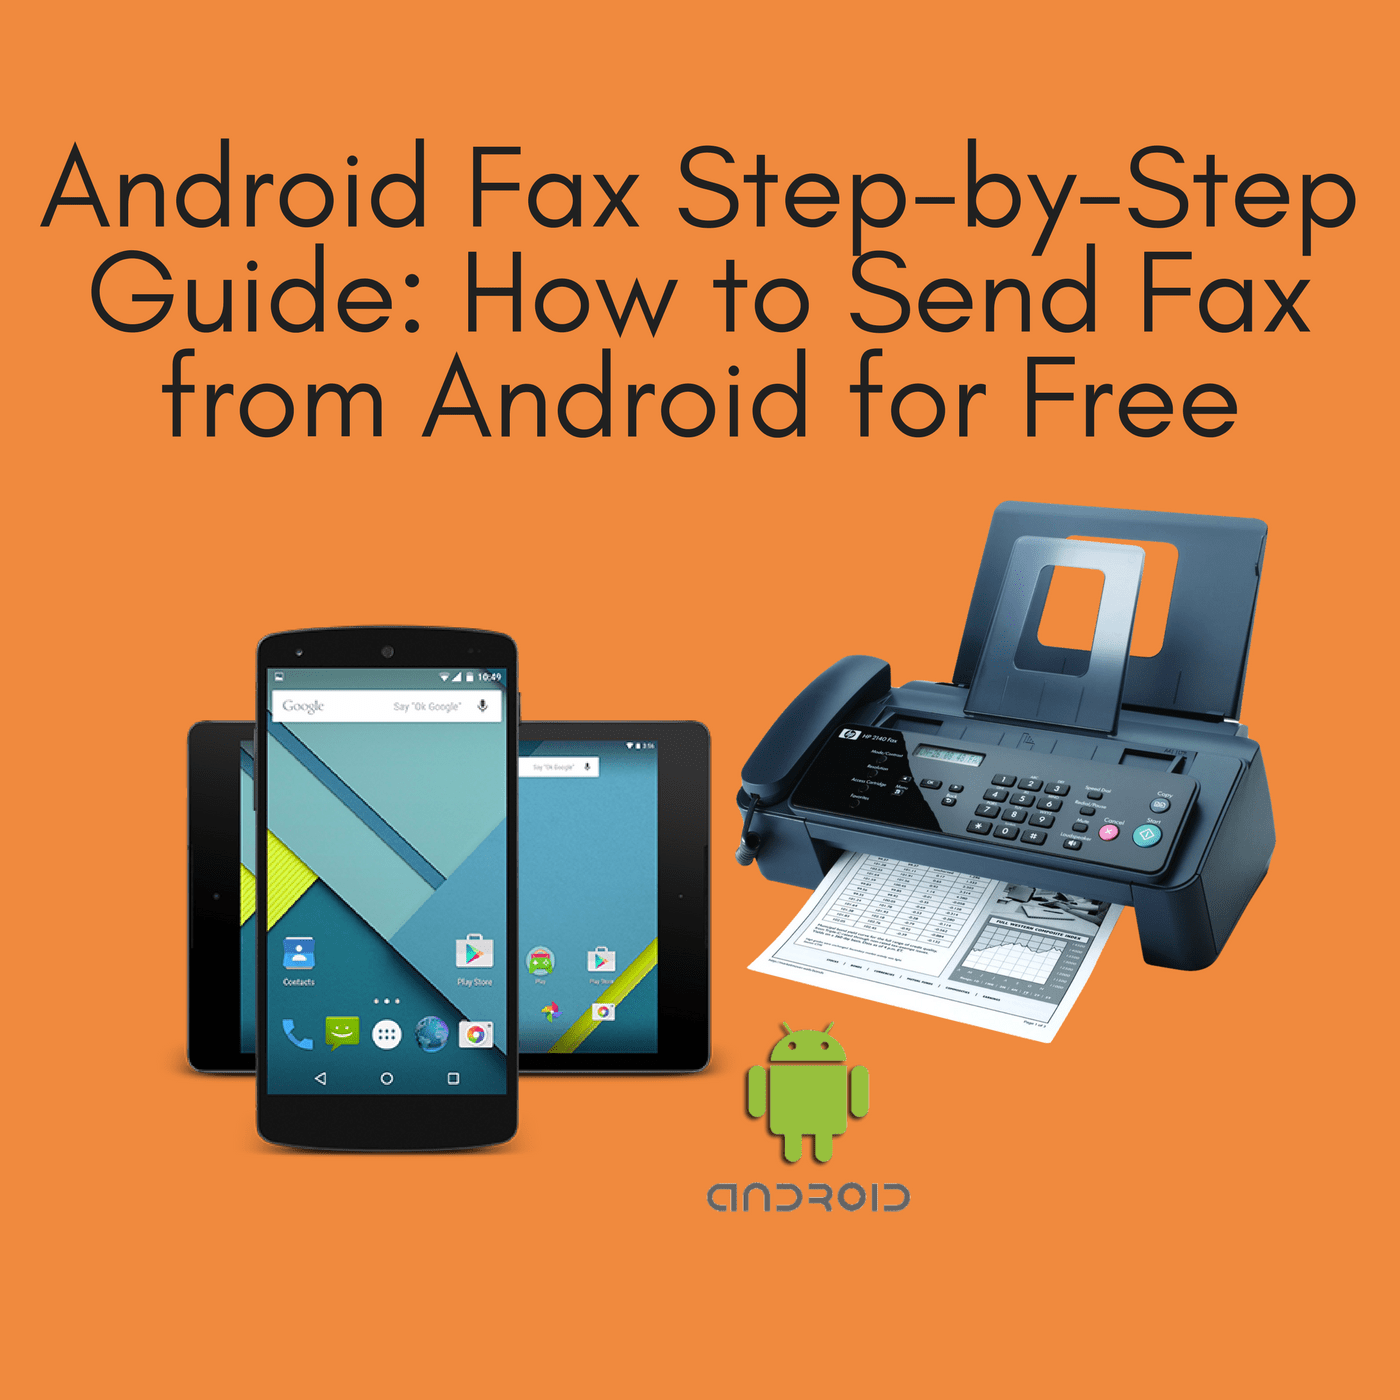 android fax step by step guide how to send fax from android for